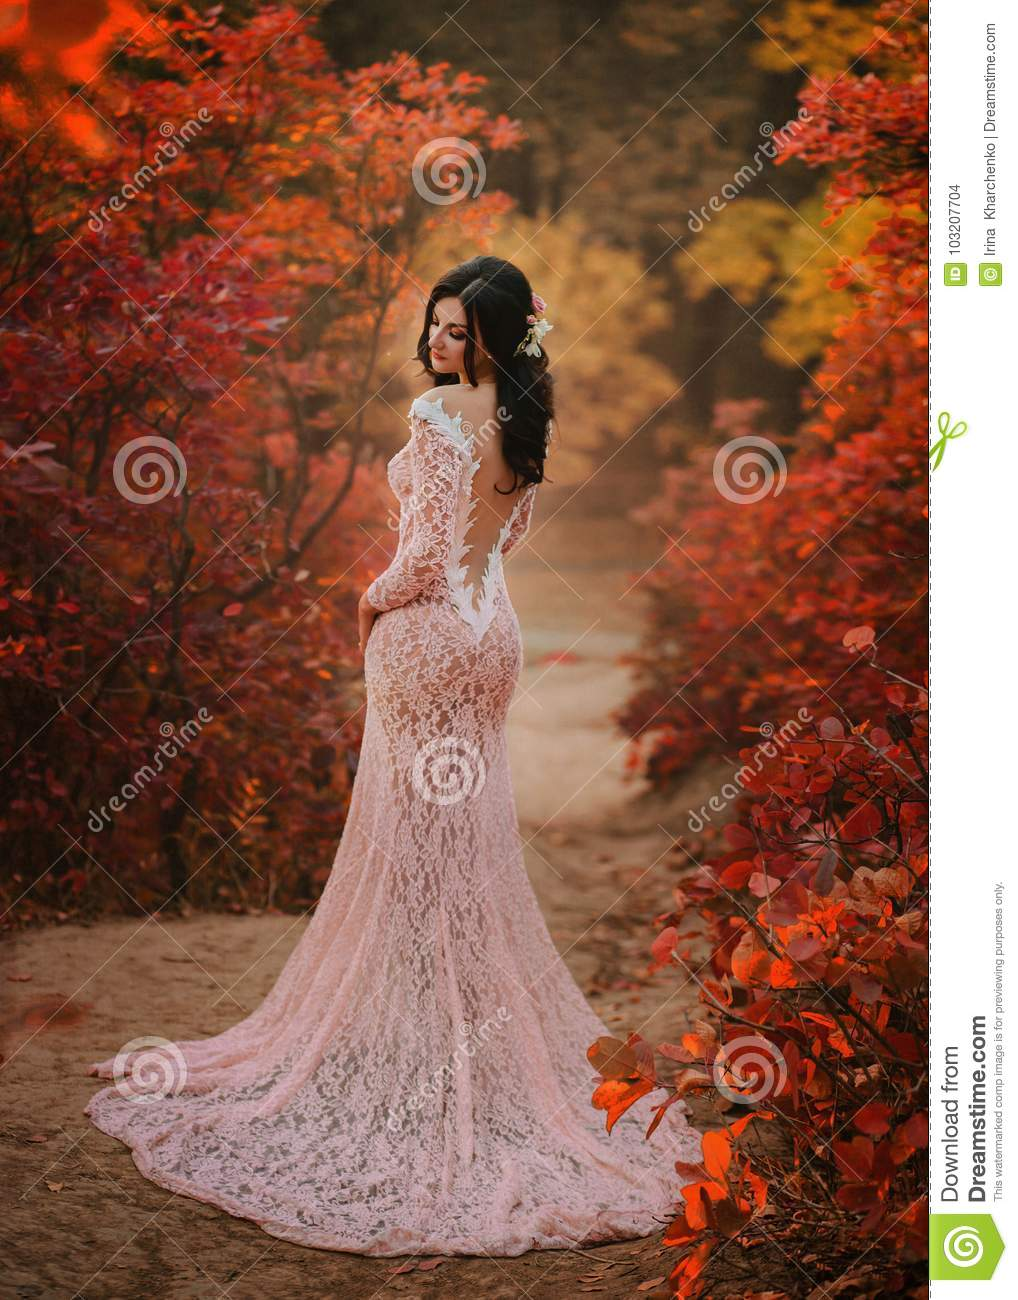 Download A happy bride stock photo. Image of beautiful, beauty - 103207704